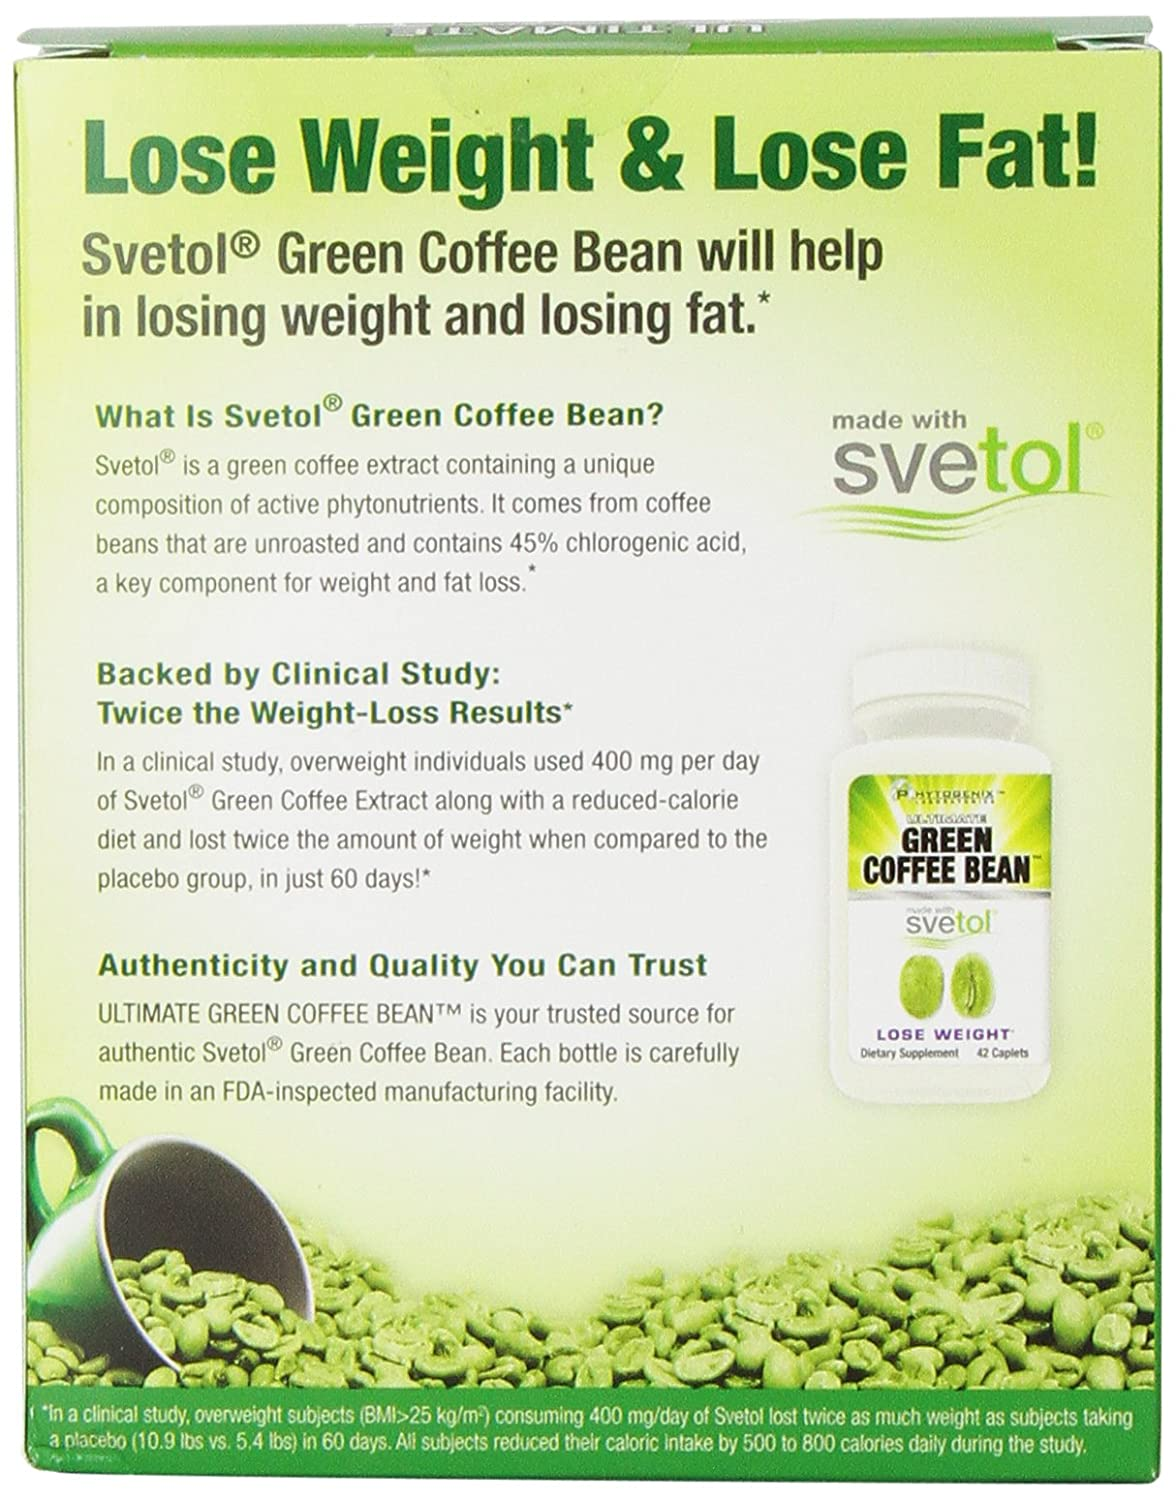 Does drinking green coffee help you lose weight image 1